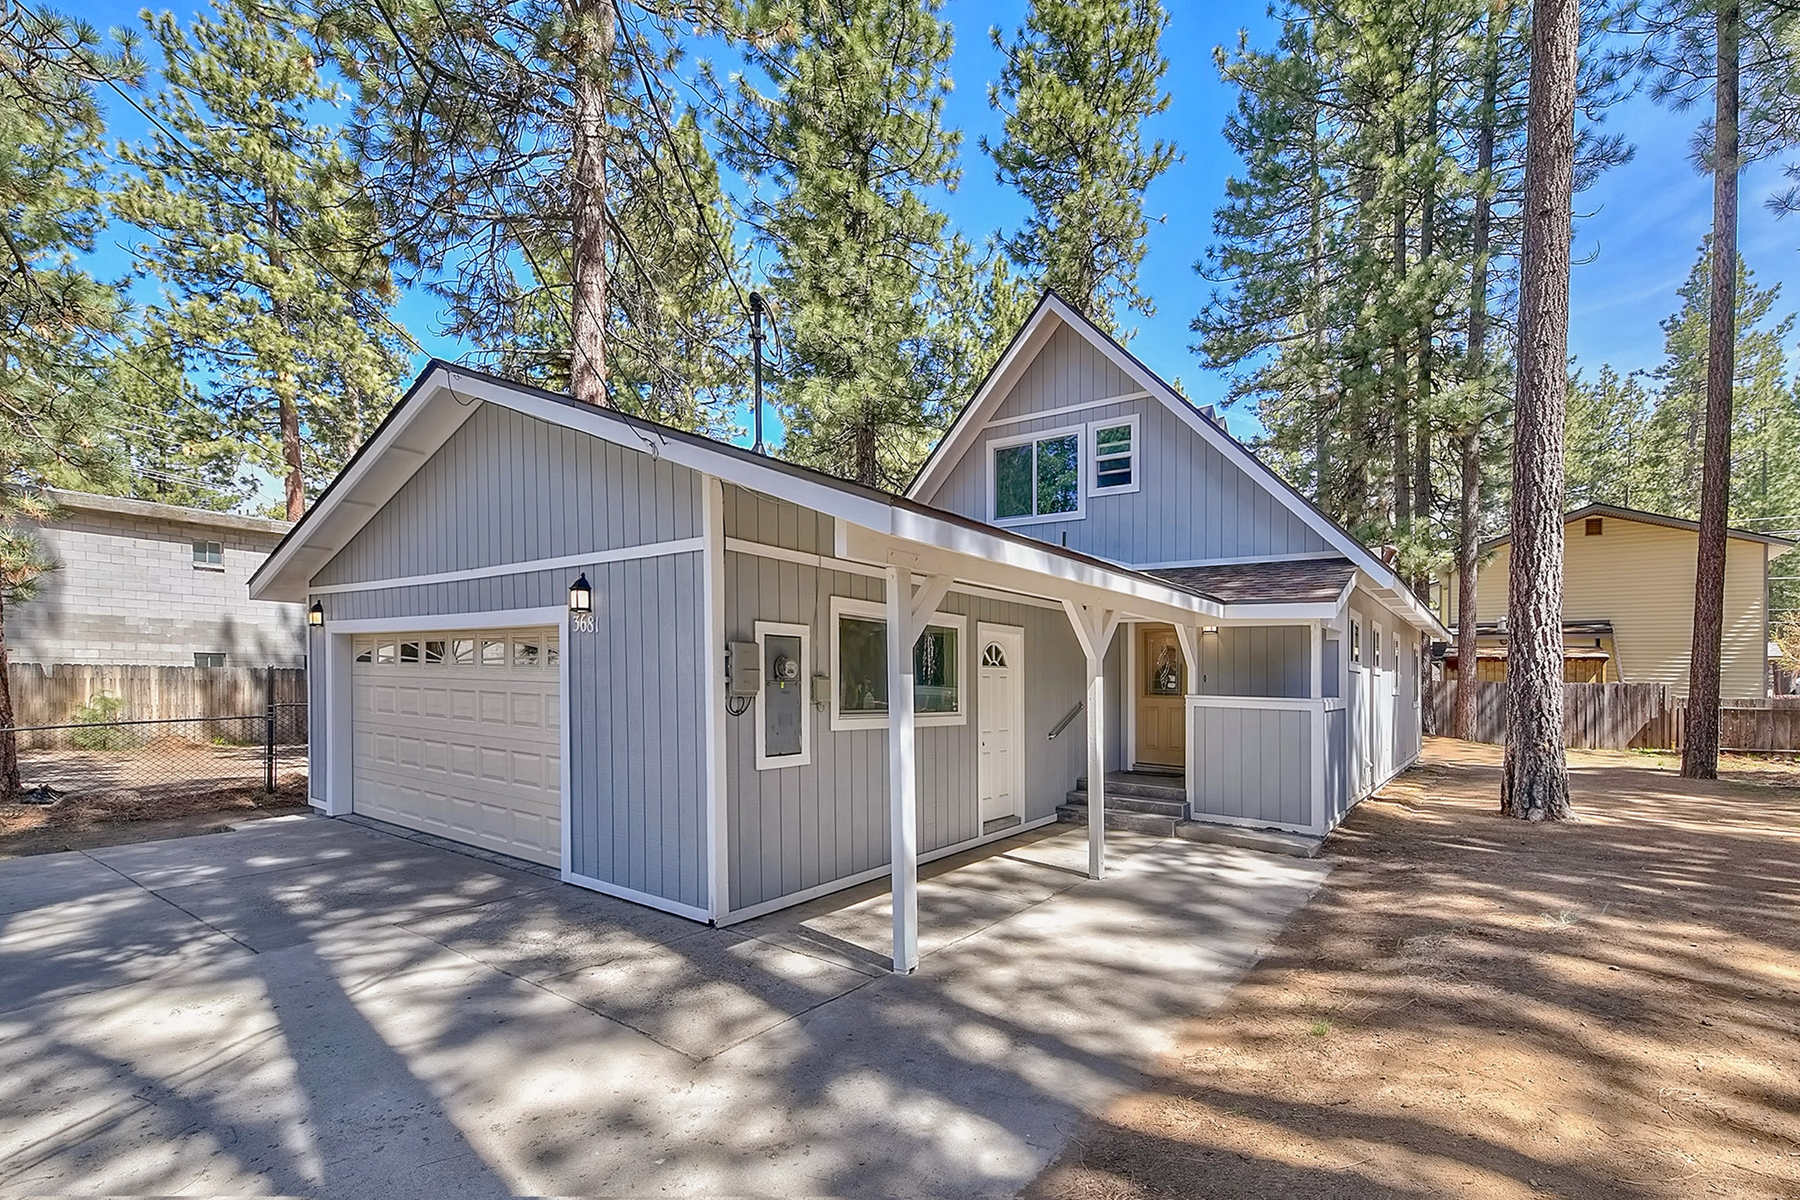 Single Family Homes for Active at 3681 Primrose Road, South Lake Tahoe CA 96150 3681 Primrose Road South Lake Tahoe, California 96150 United States